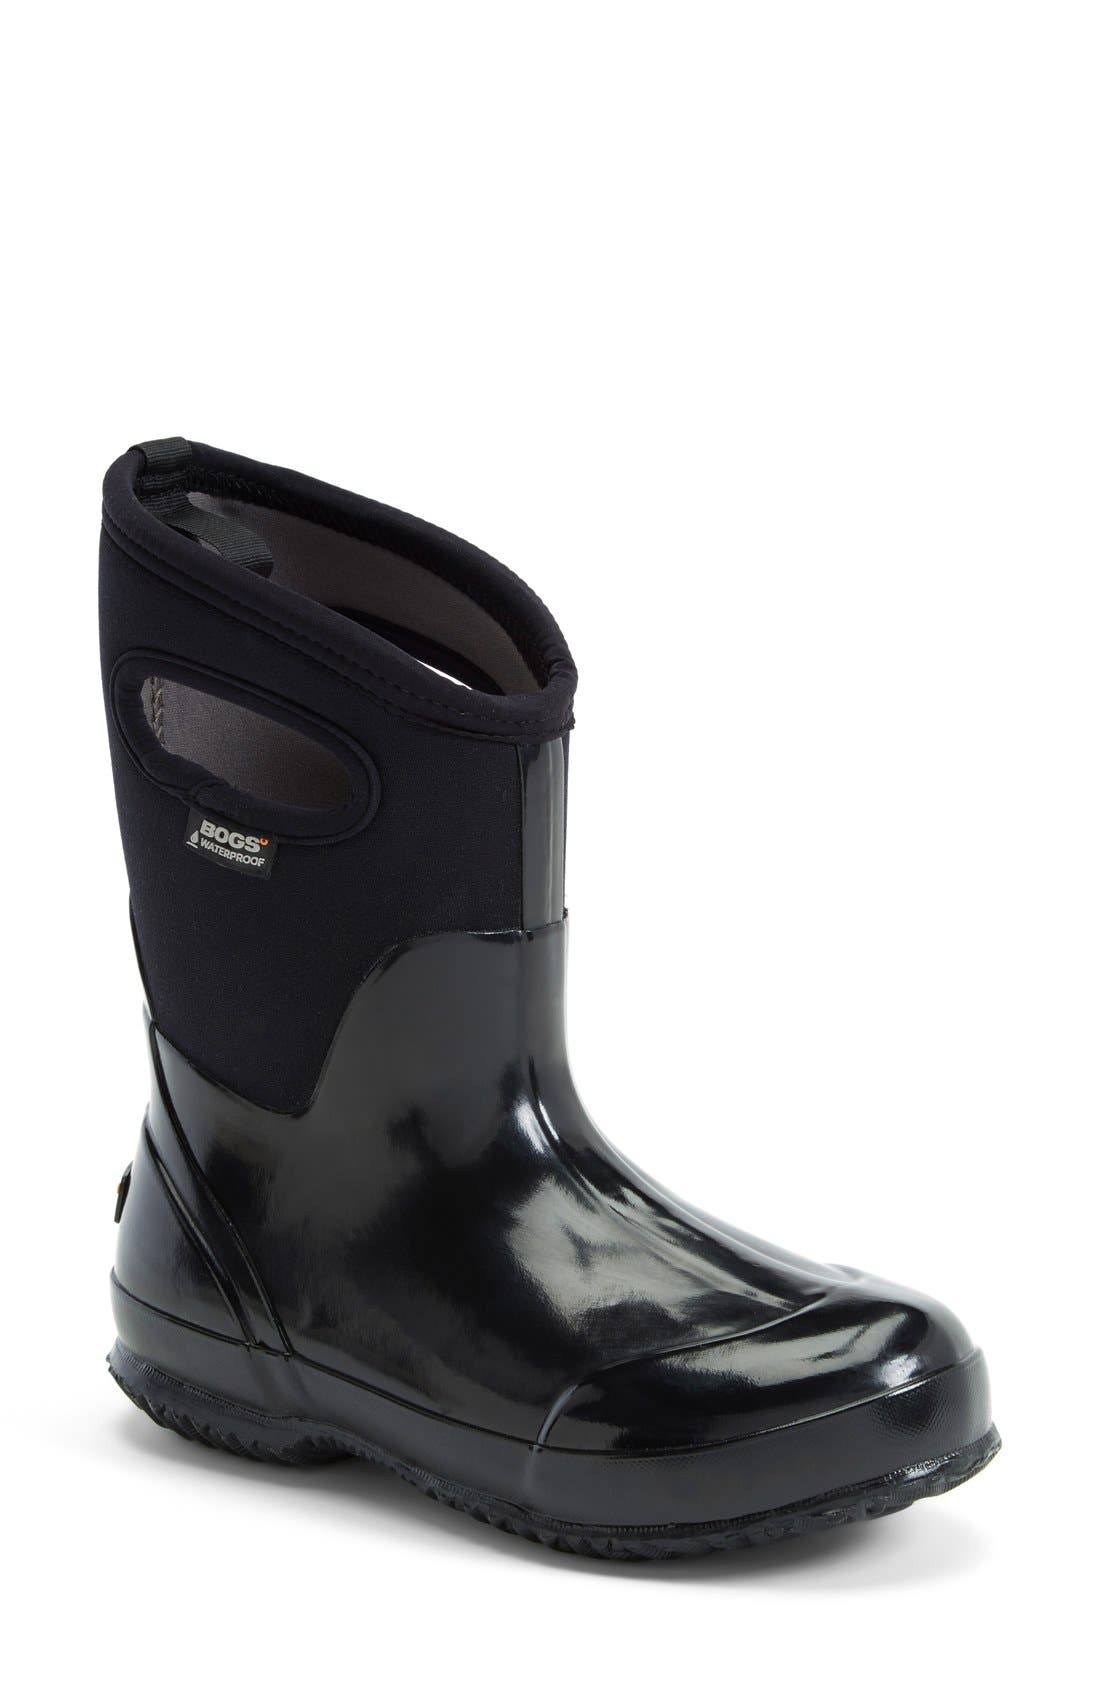 'Classic' Mid High Waterproof Snow Boot With Cutout Handles